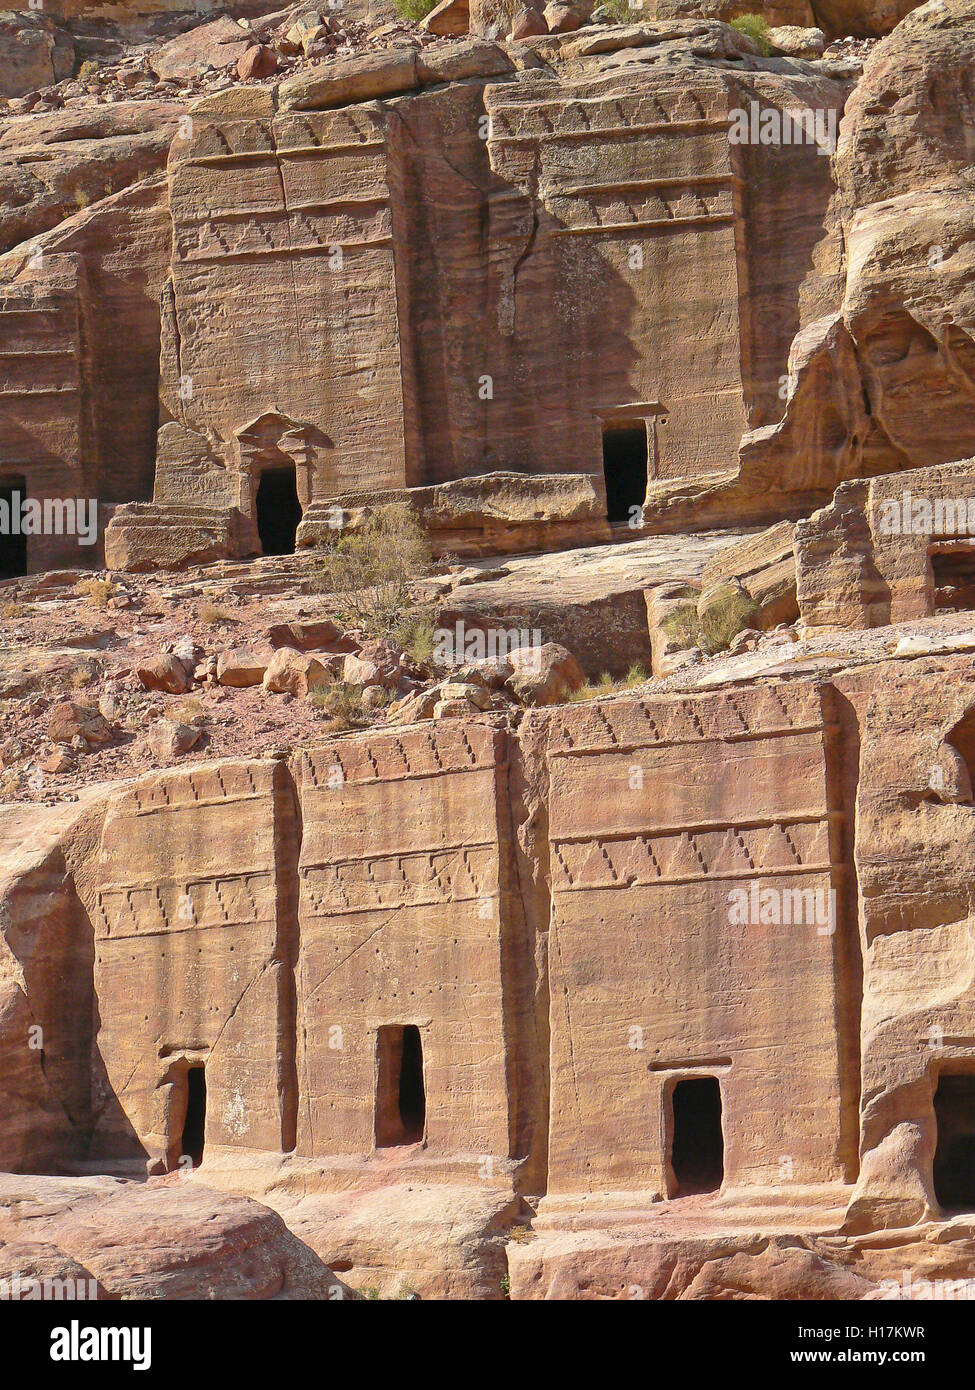 Street of Façades, Tombs of Petra, Jordan - Stock Image